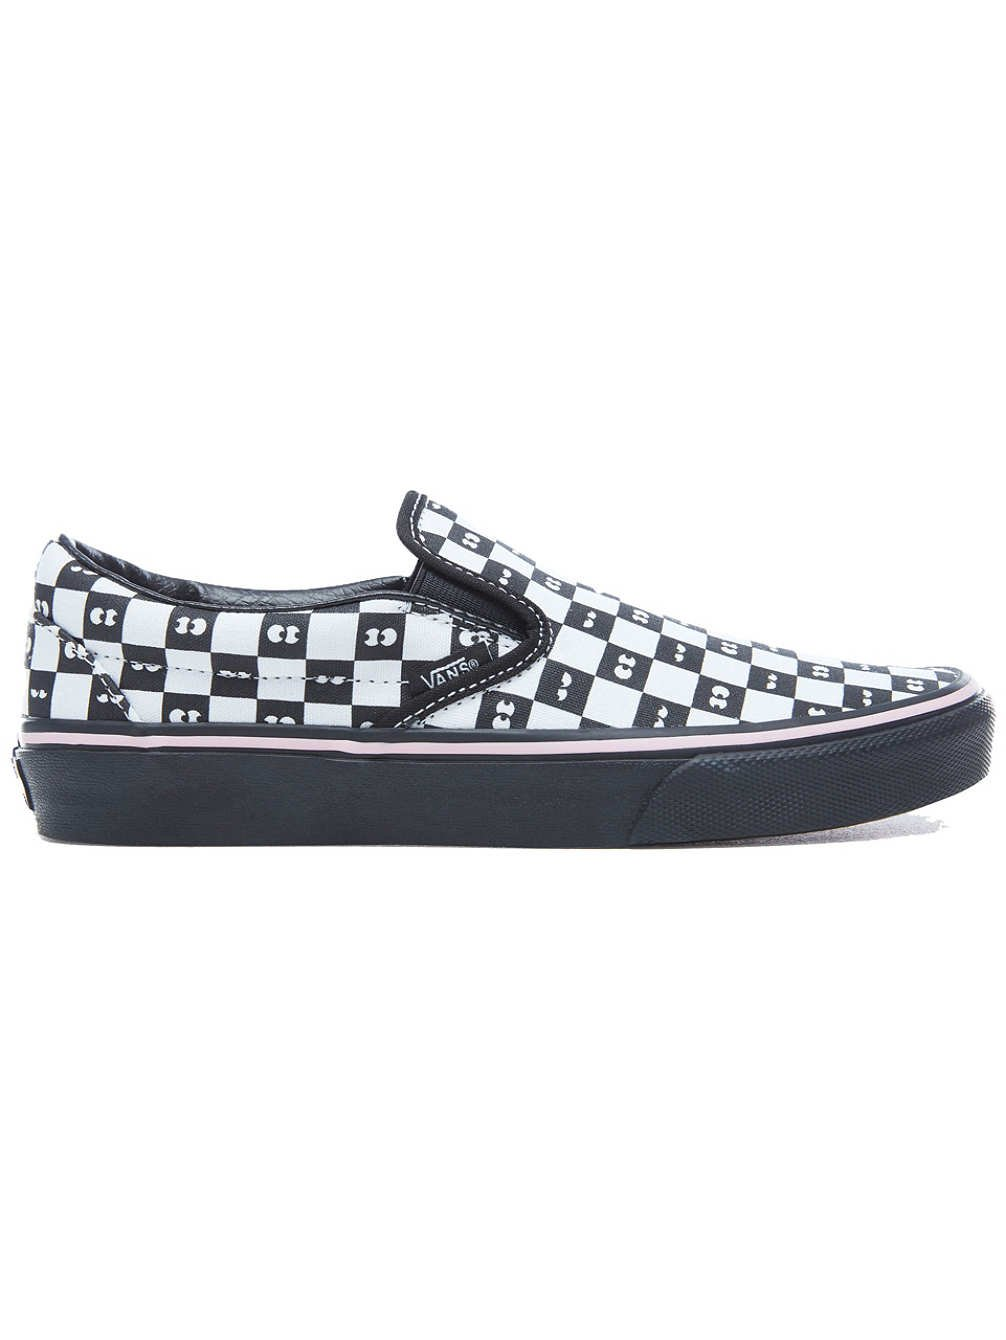 06dfd1e167 Galleon - Vans Skate Shoe (Men 5.5 Women 7